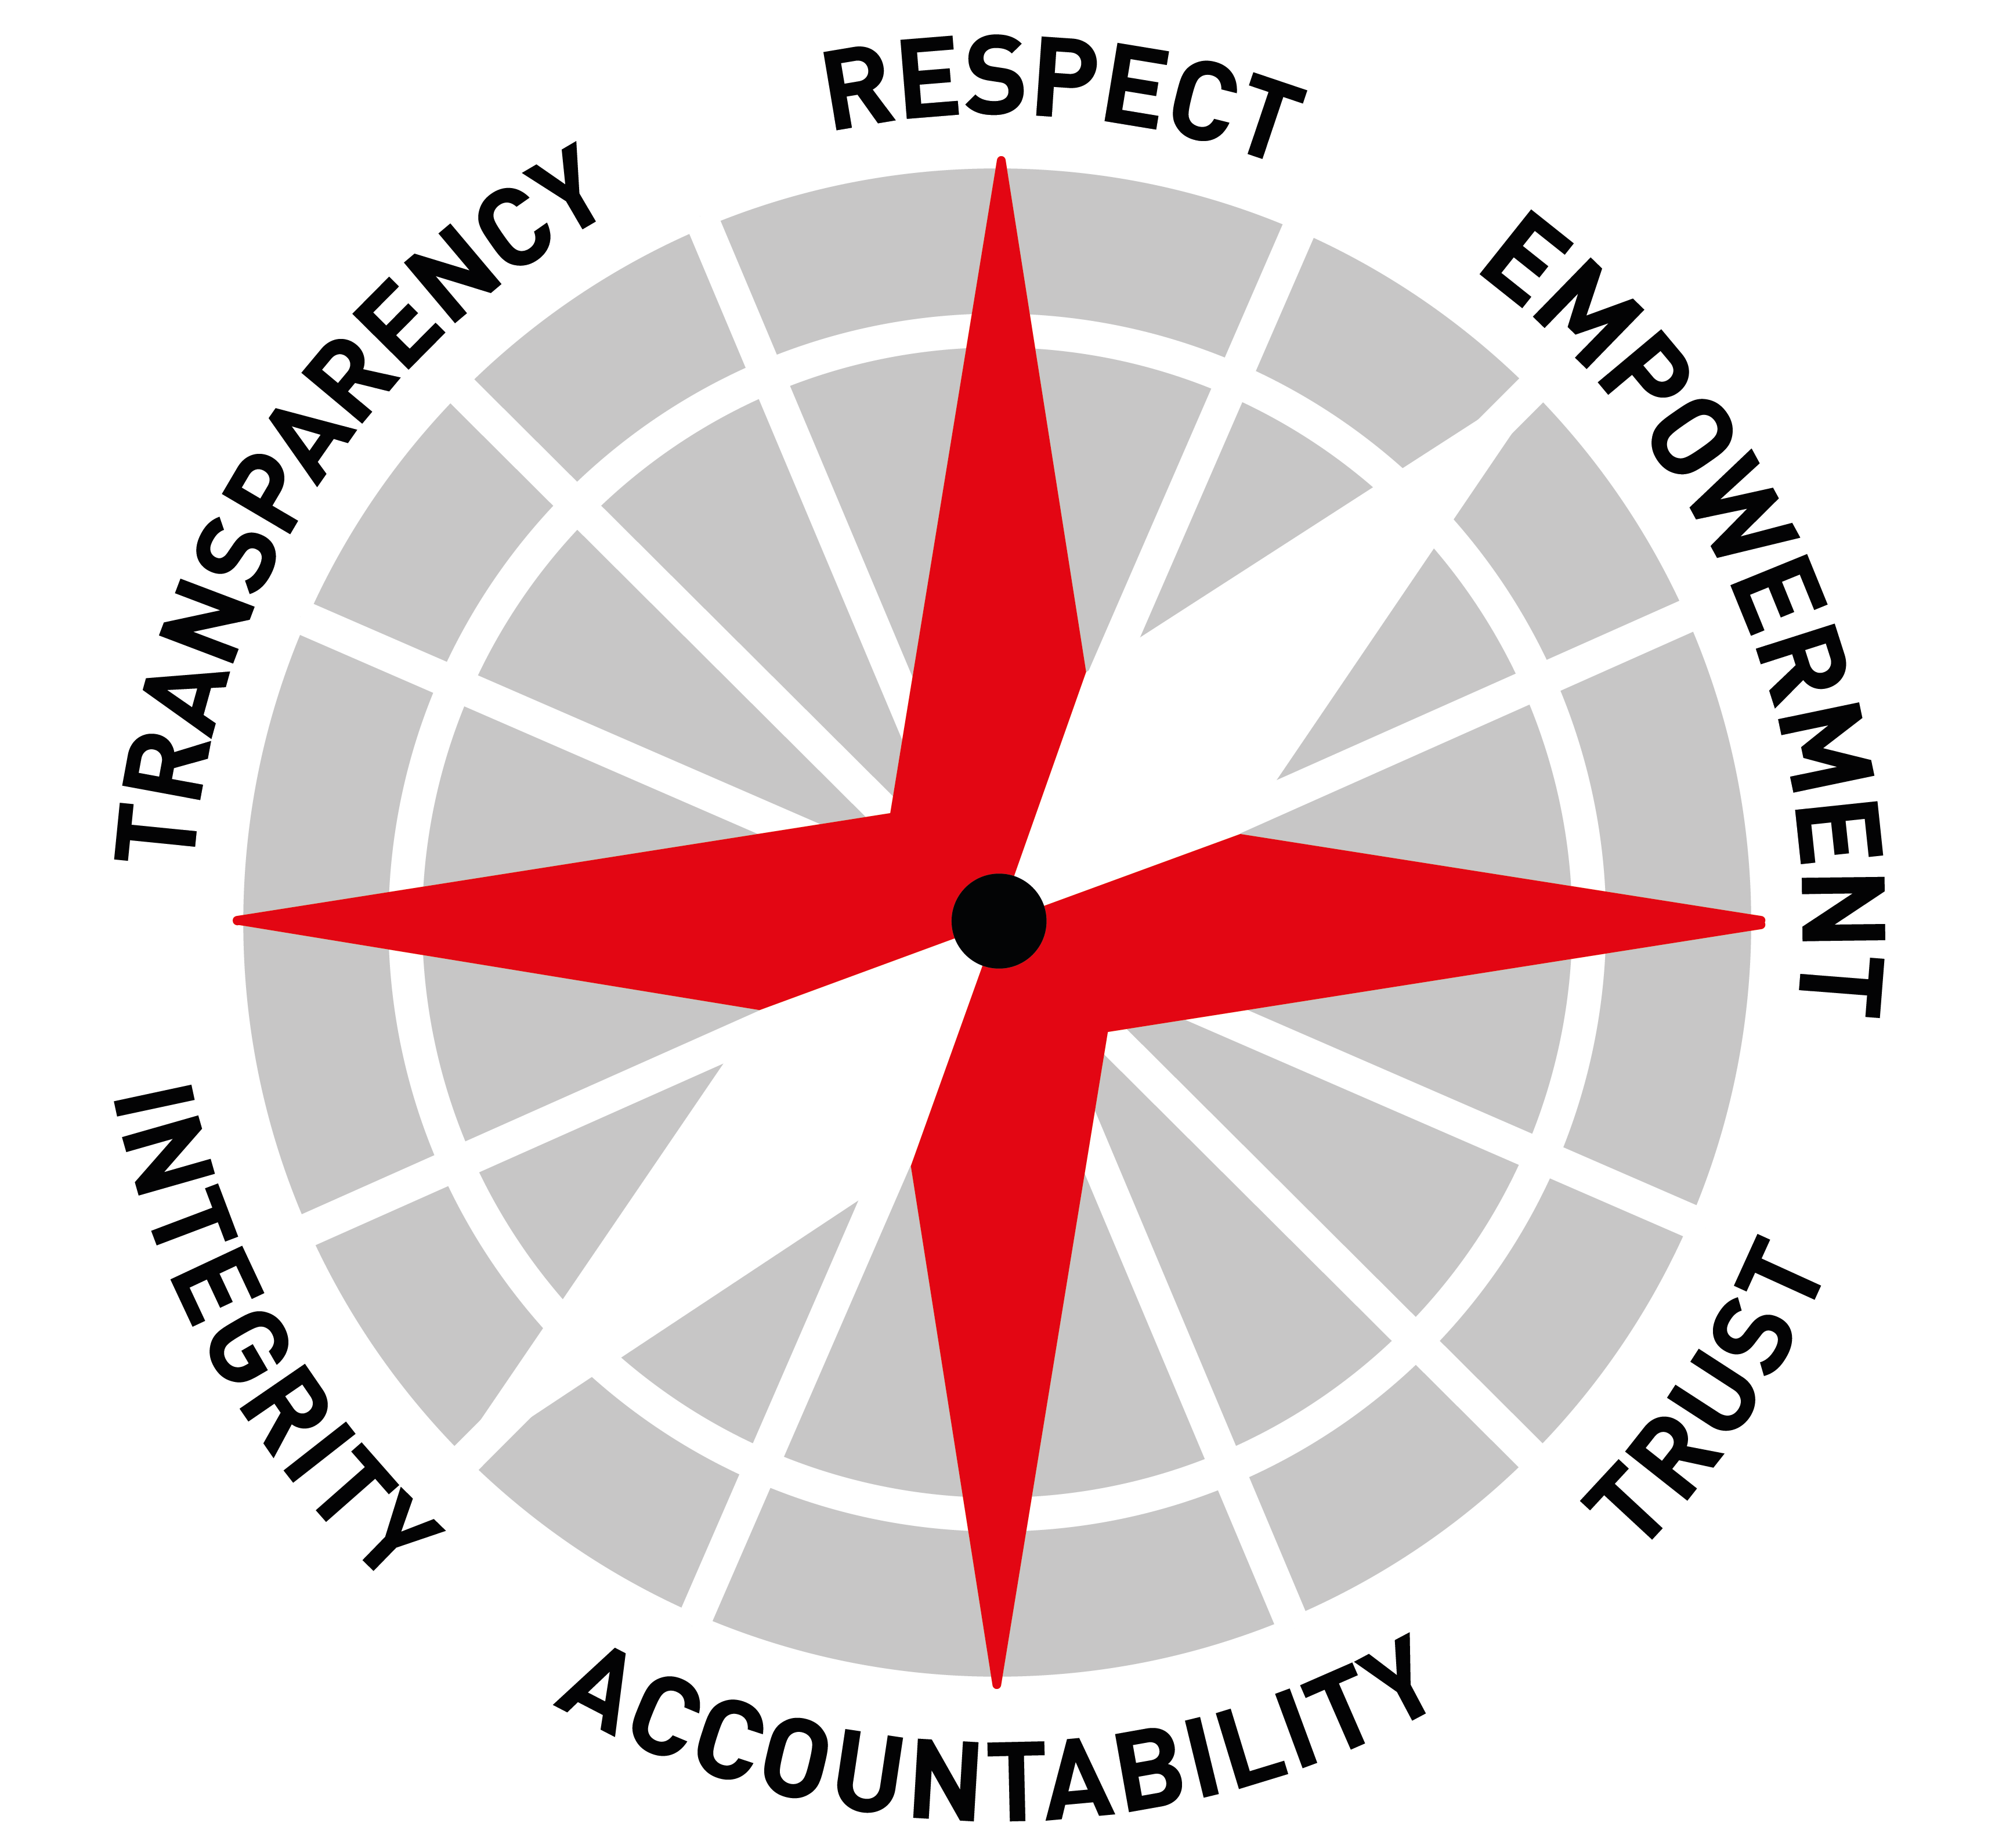 MSF Values